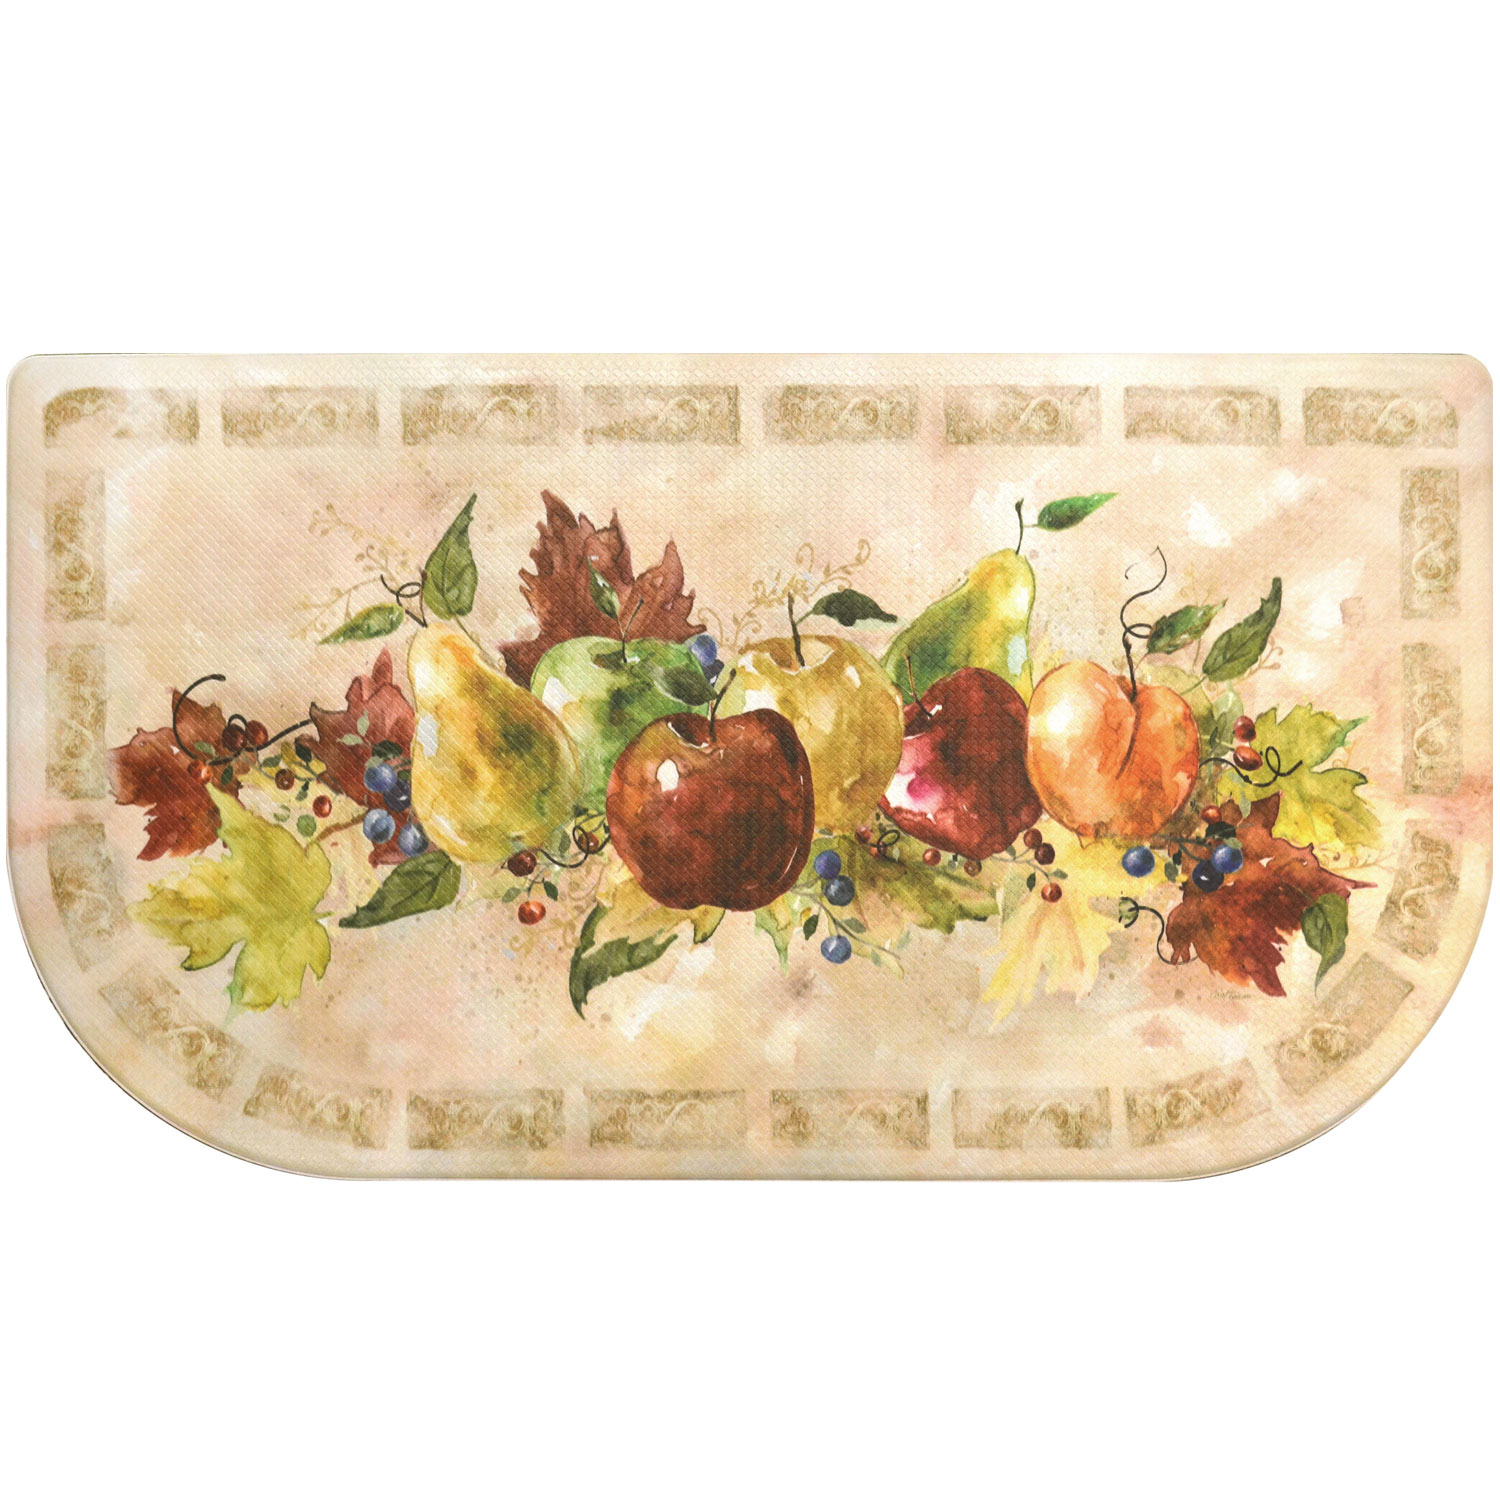 Home Dynamix Cook N Comfort Napa Fruit Slice Kitchen Mat - CNC81